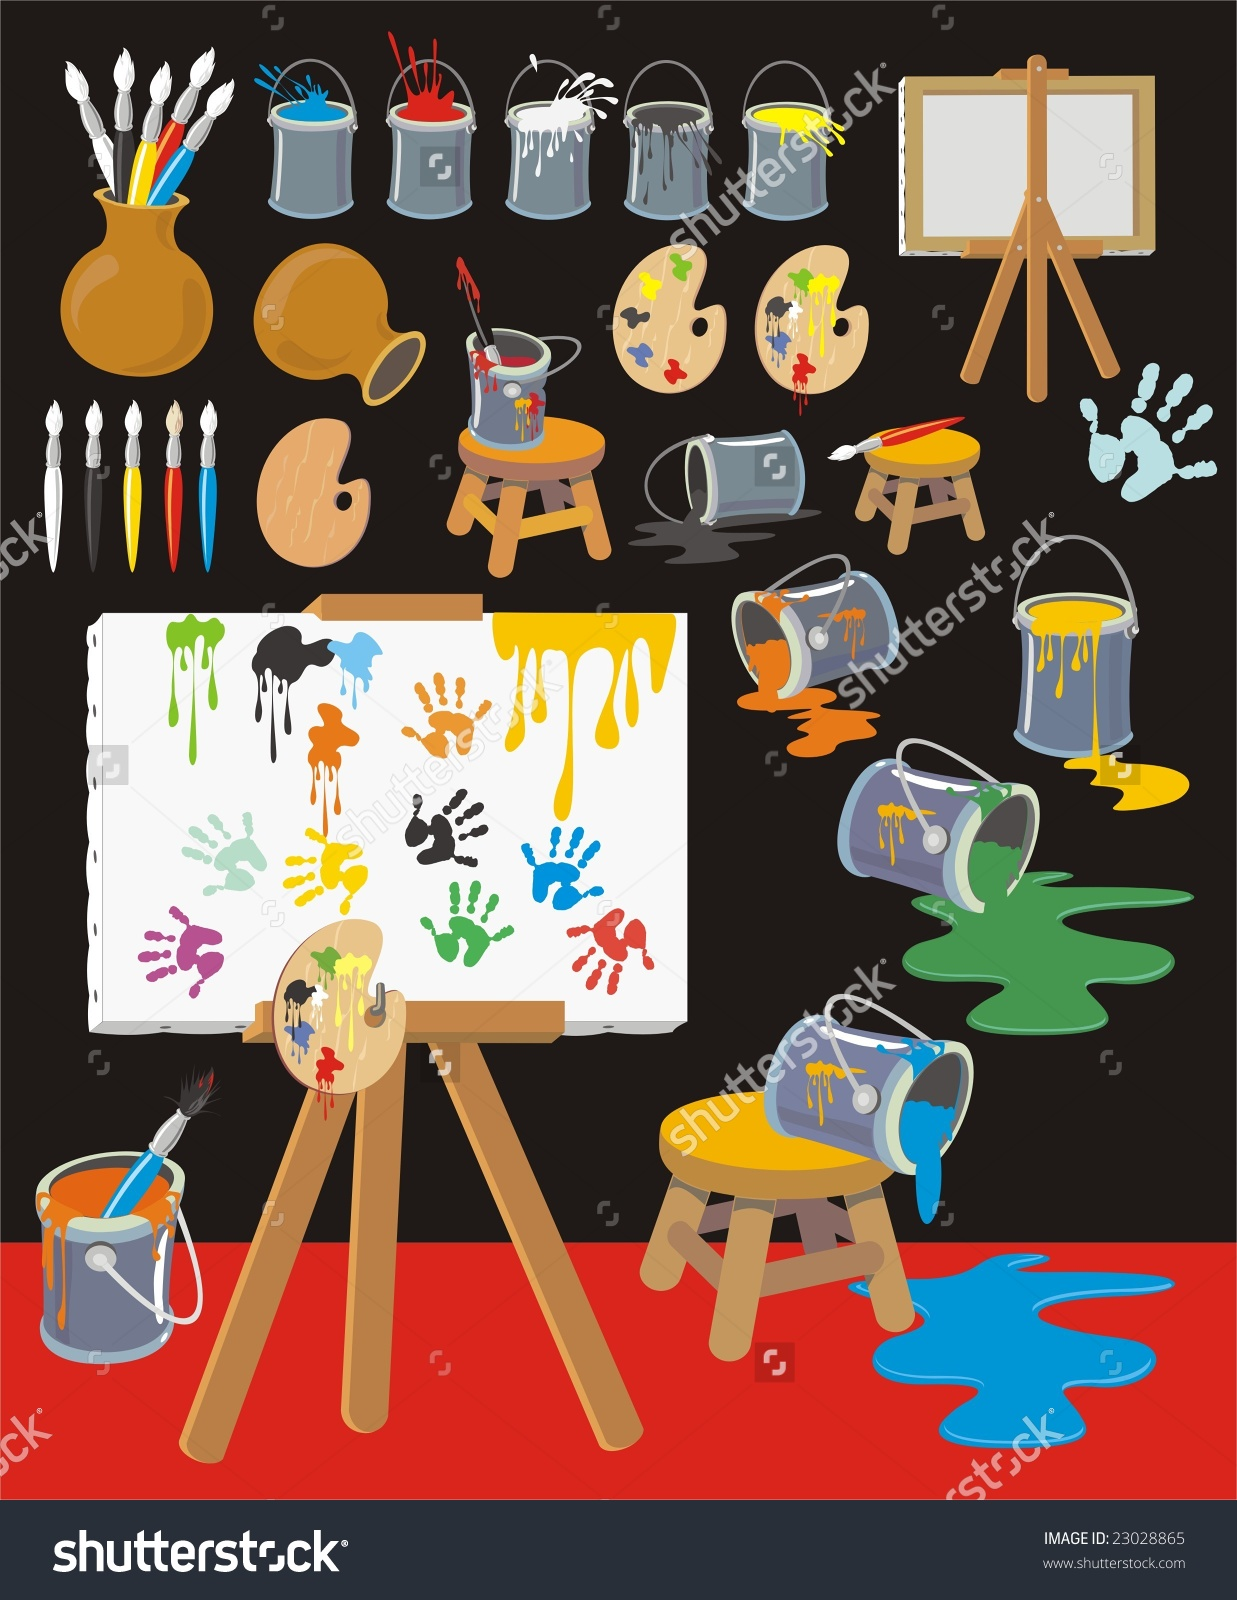 Clip Art With Palettes, Paintbrushes, Paint.